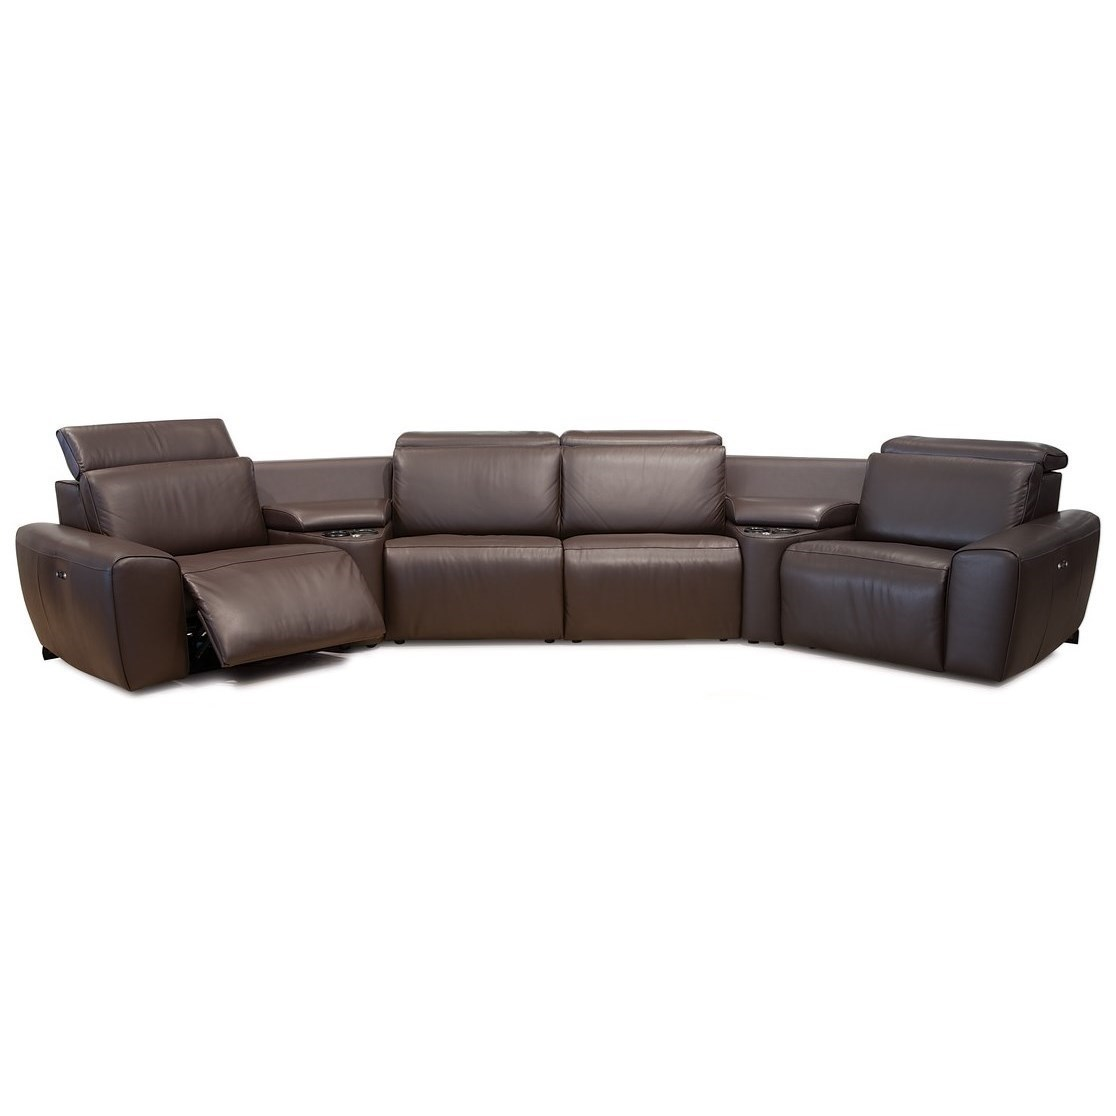 Palliser Beaumont4 Seat Angled Reclining Sectional ...